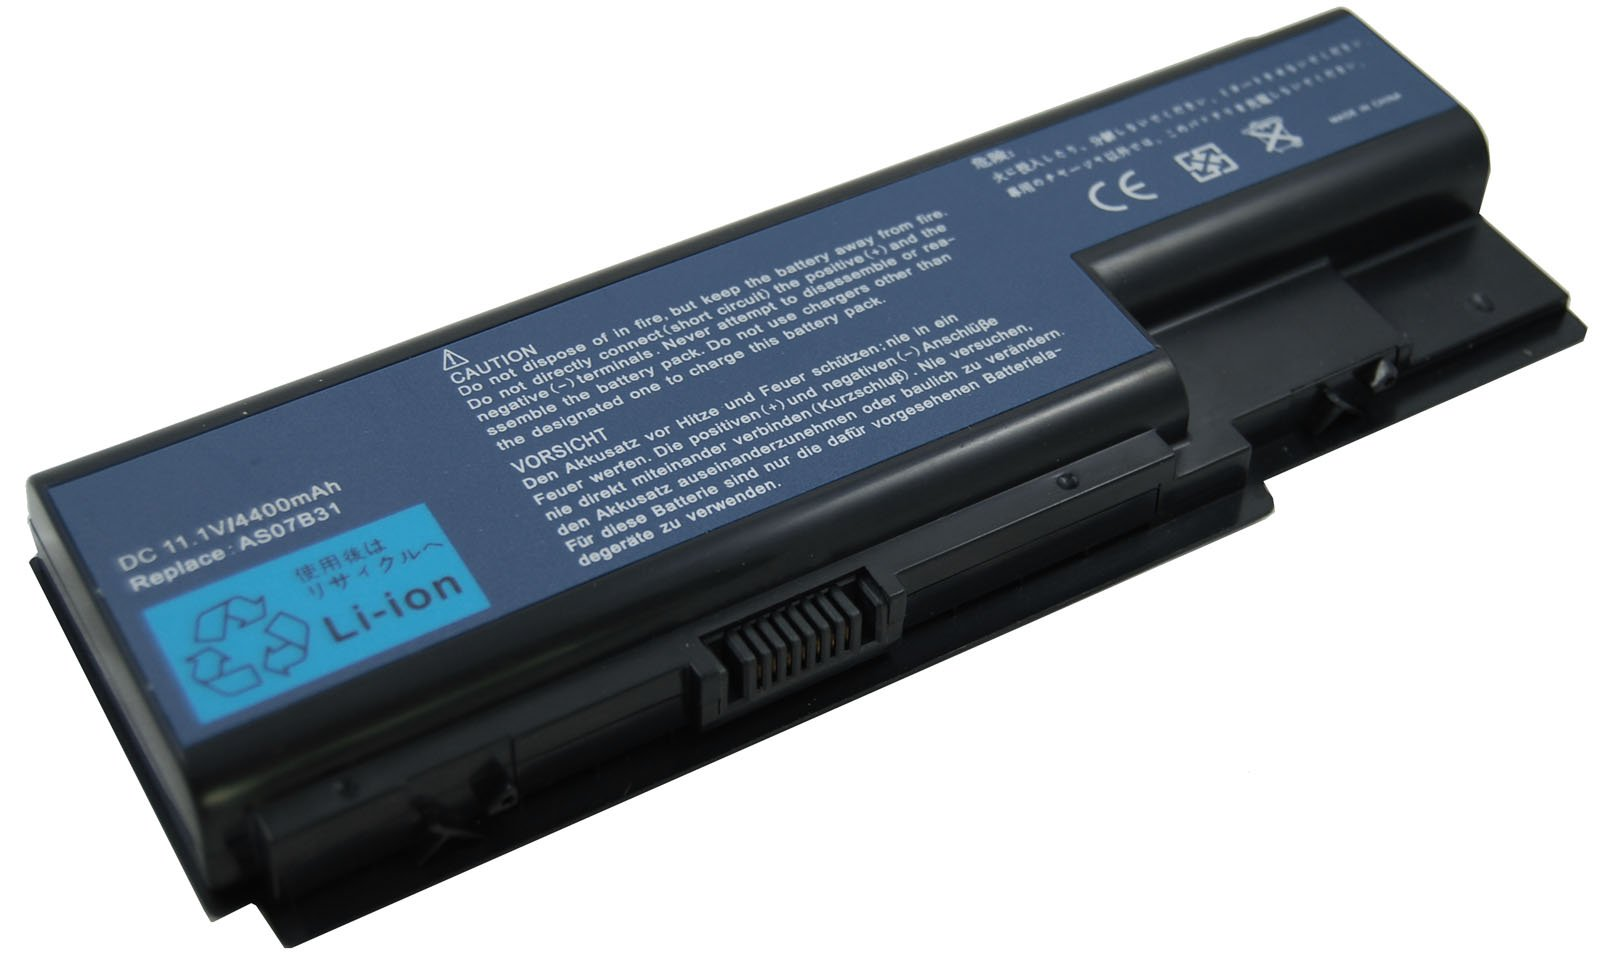 Sony Laptop battery repair/replacement